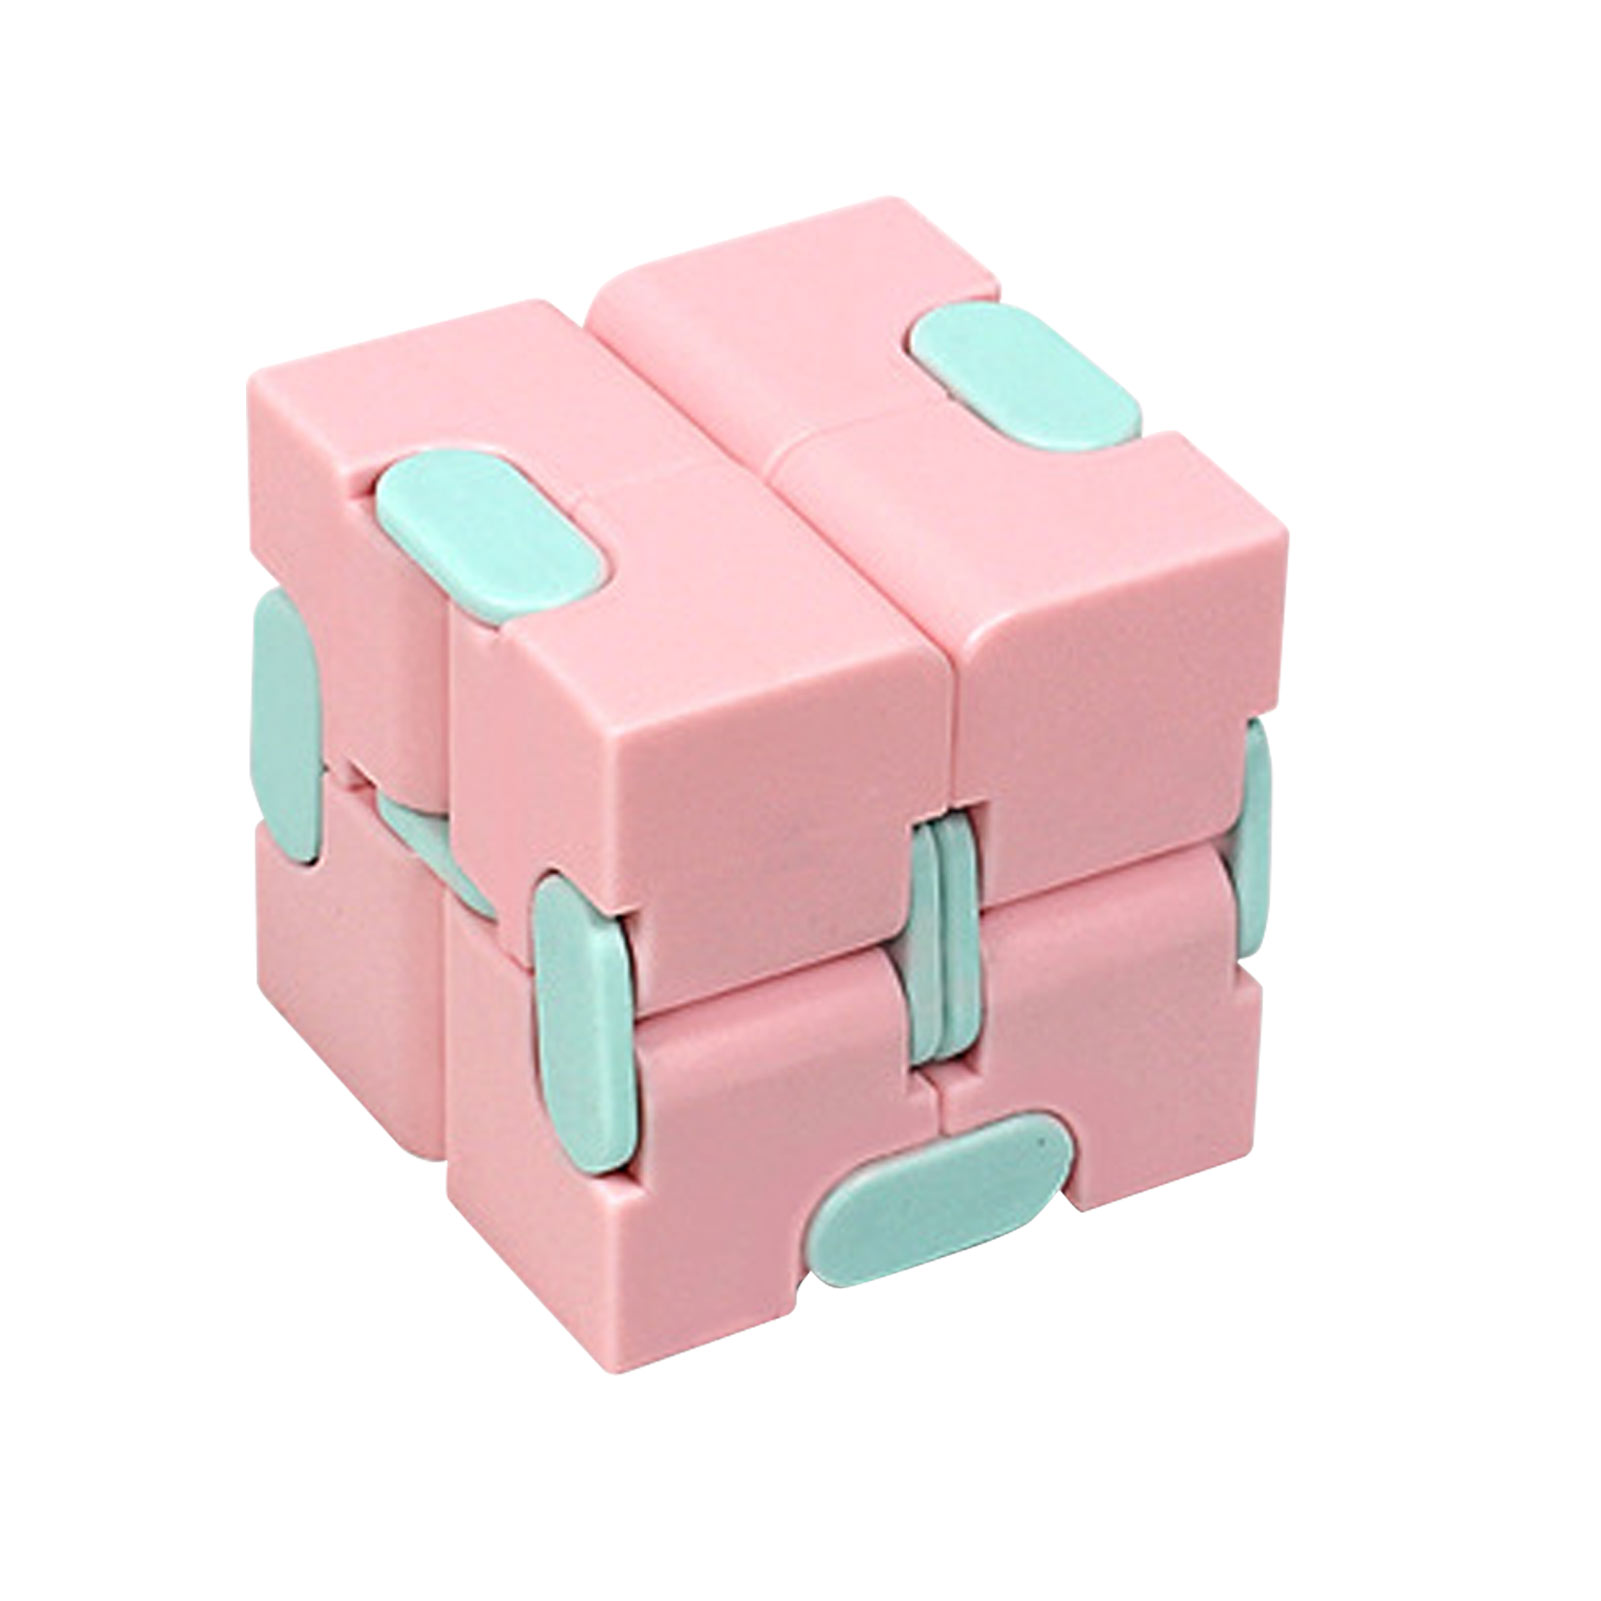 New Magic Cube Puzzle Cube Durable Exquisite Decompression Anti-stress Professional Educational Toys For Children Adults 9